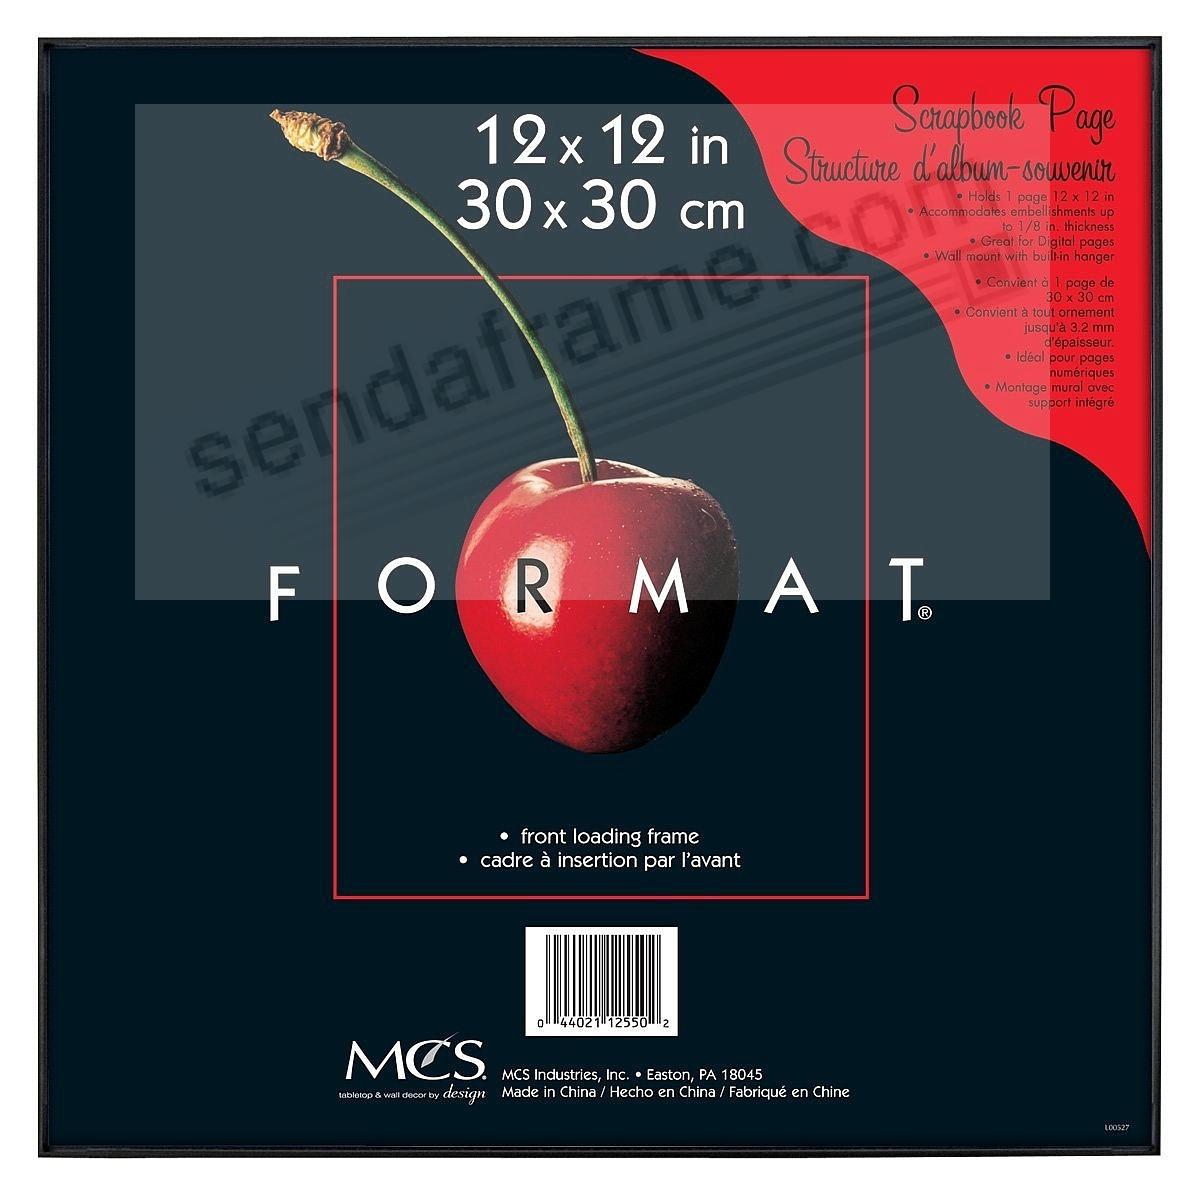 The ORIGINAL FORMAT FRONT-LOAD Black 12x12 Frame